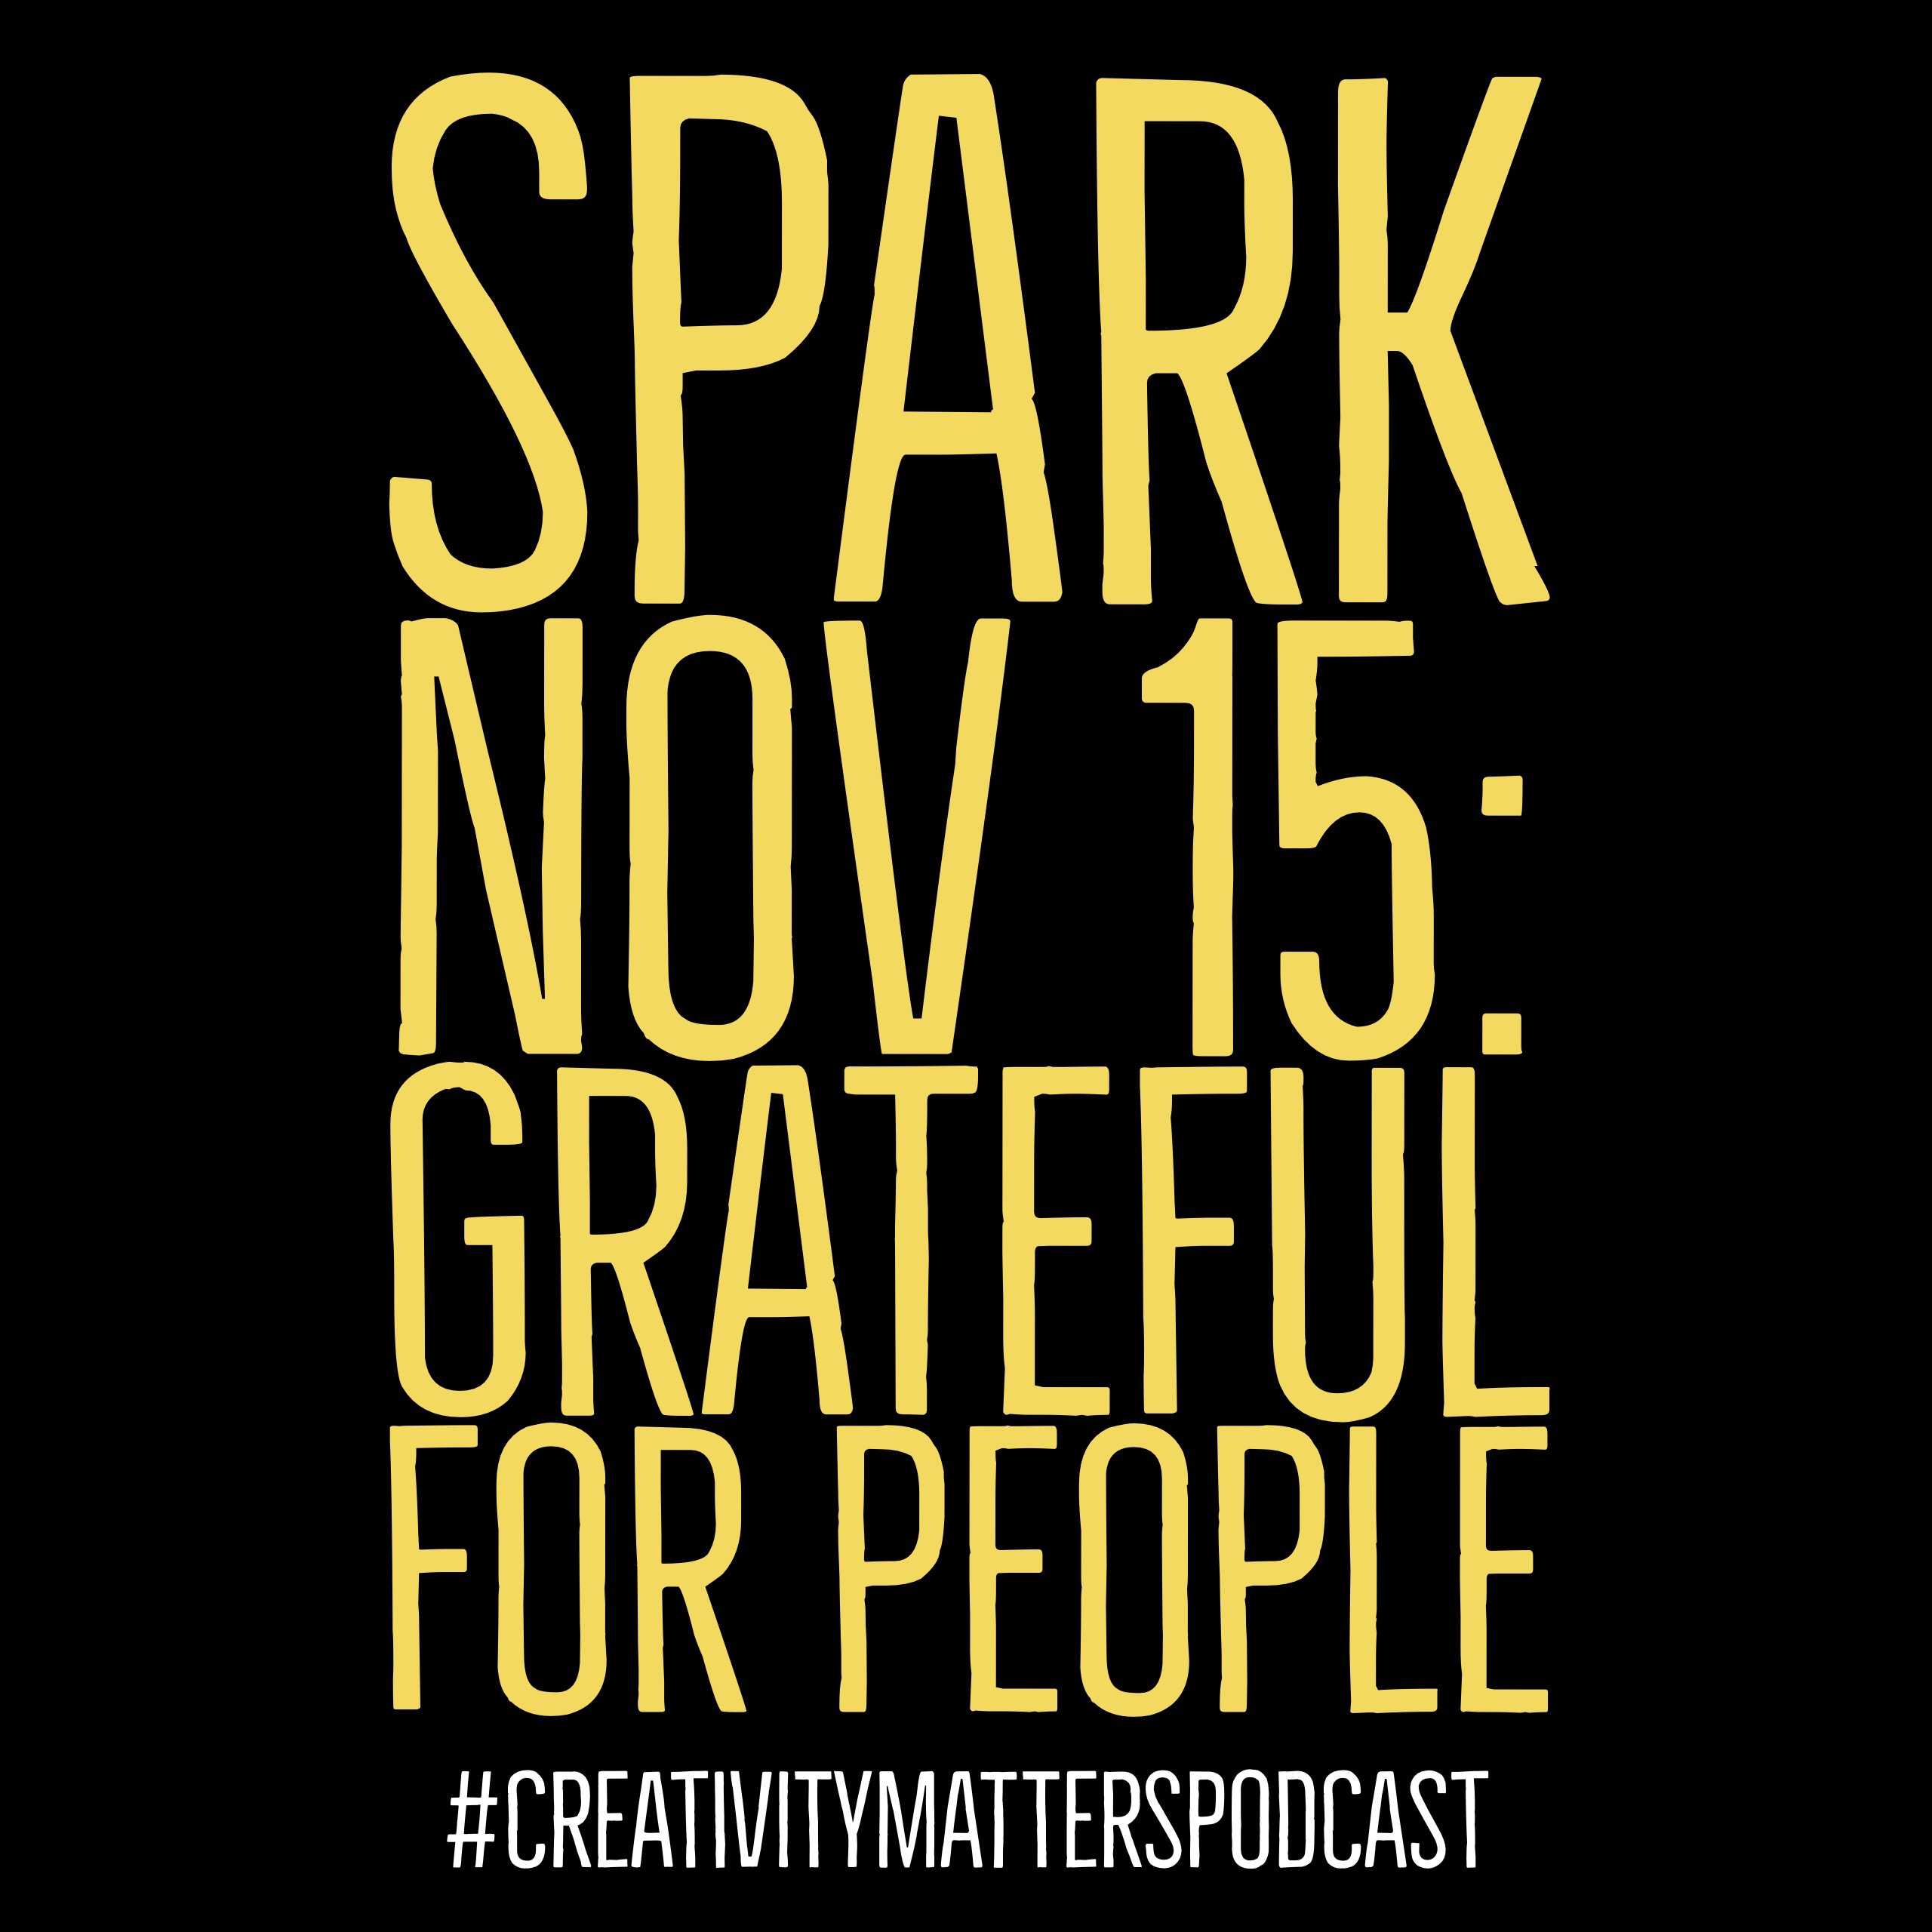 Spark 15: Grateful for People